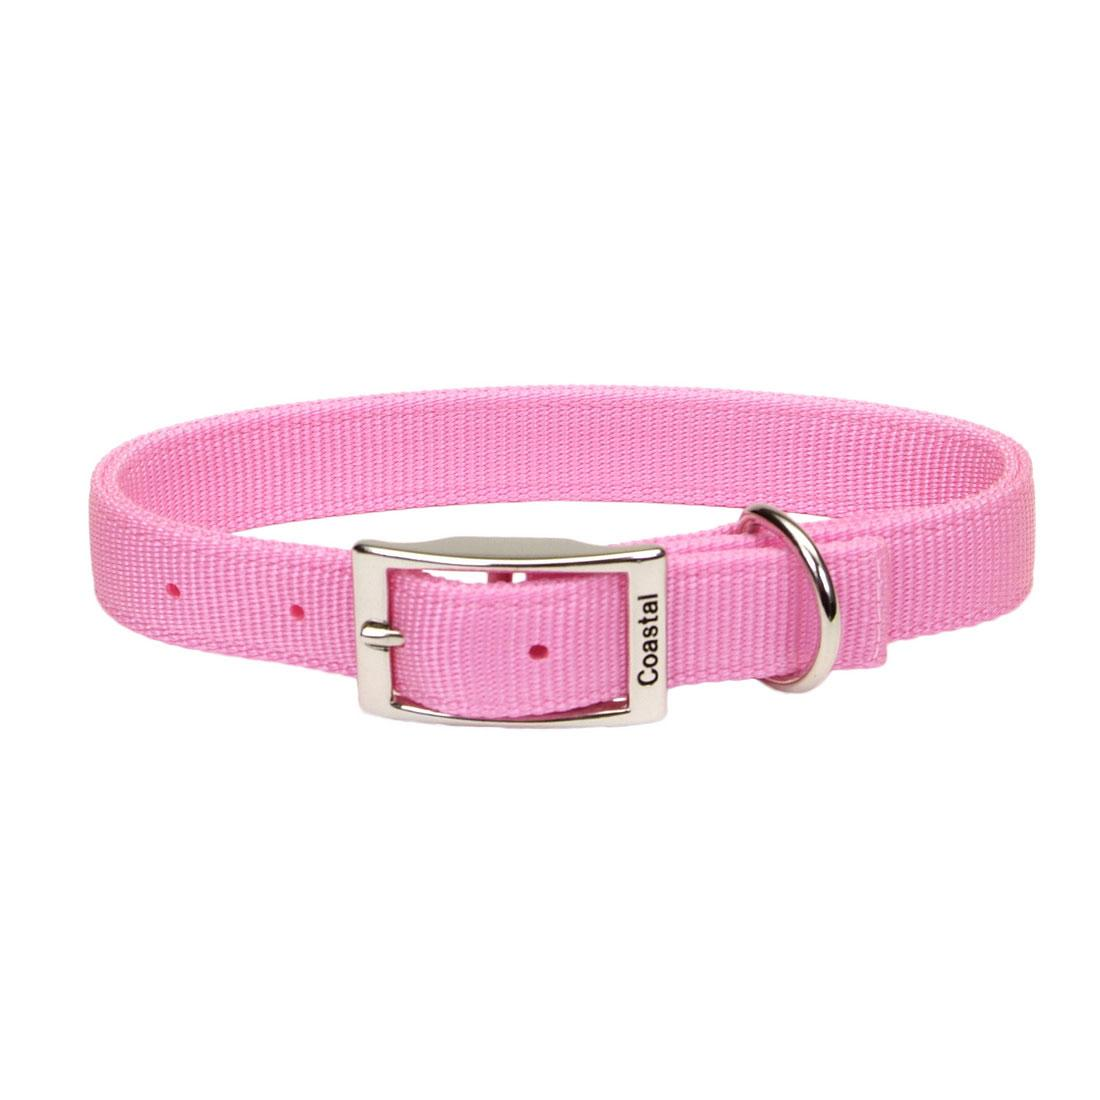 Coastal Double-Ply Dog Collar, Pink Bright, 1-in x 20-in